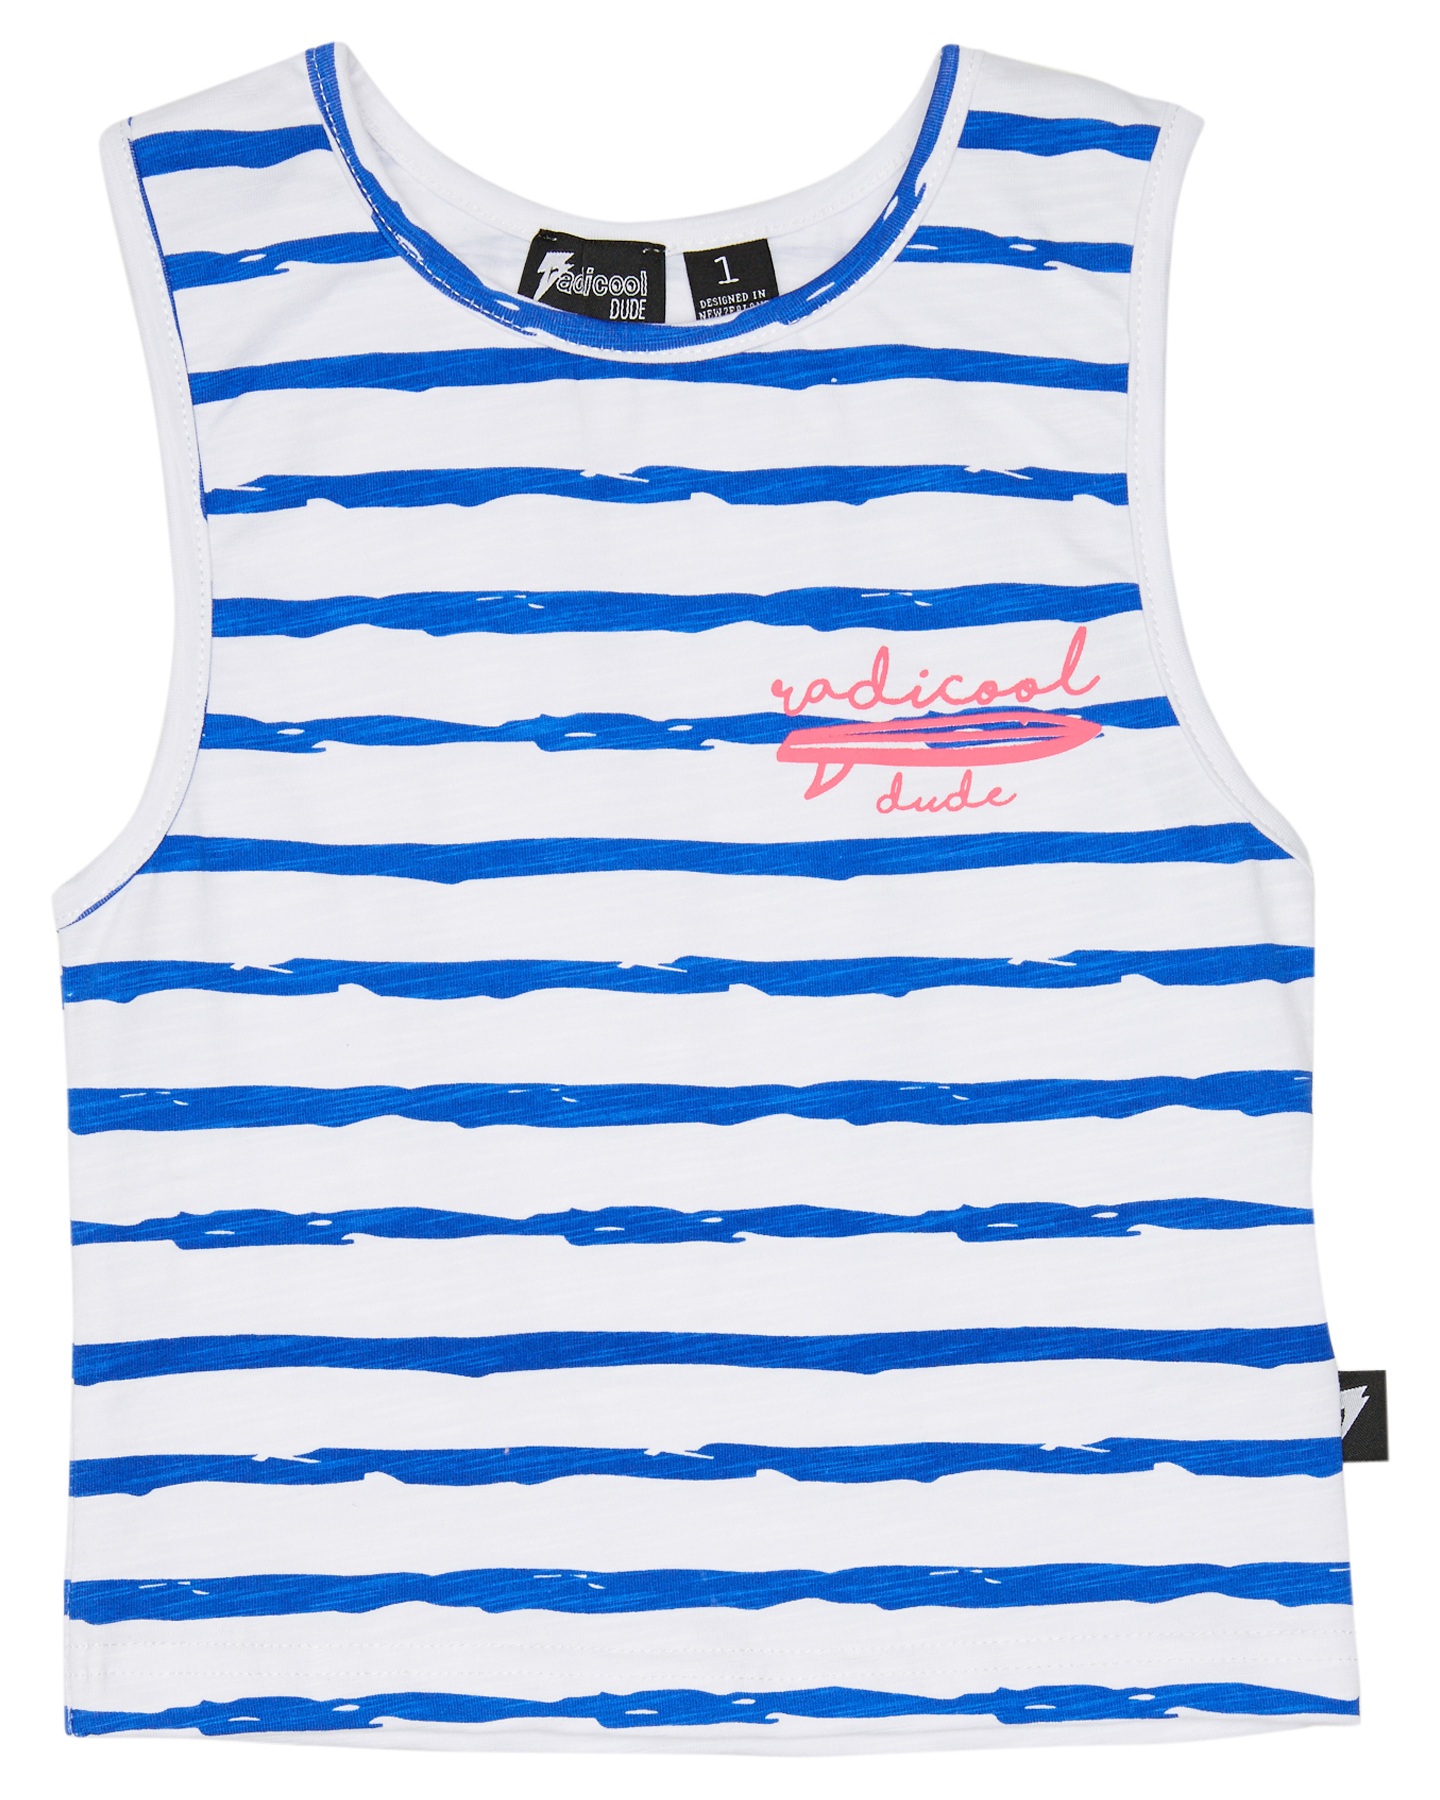 Radicool Dude Boys Triple Board Vest - Kids Cobalt Stripe